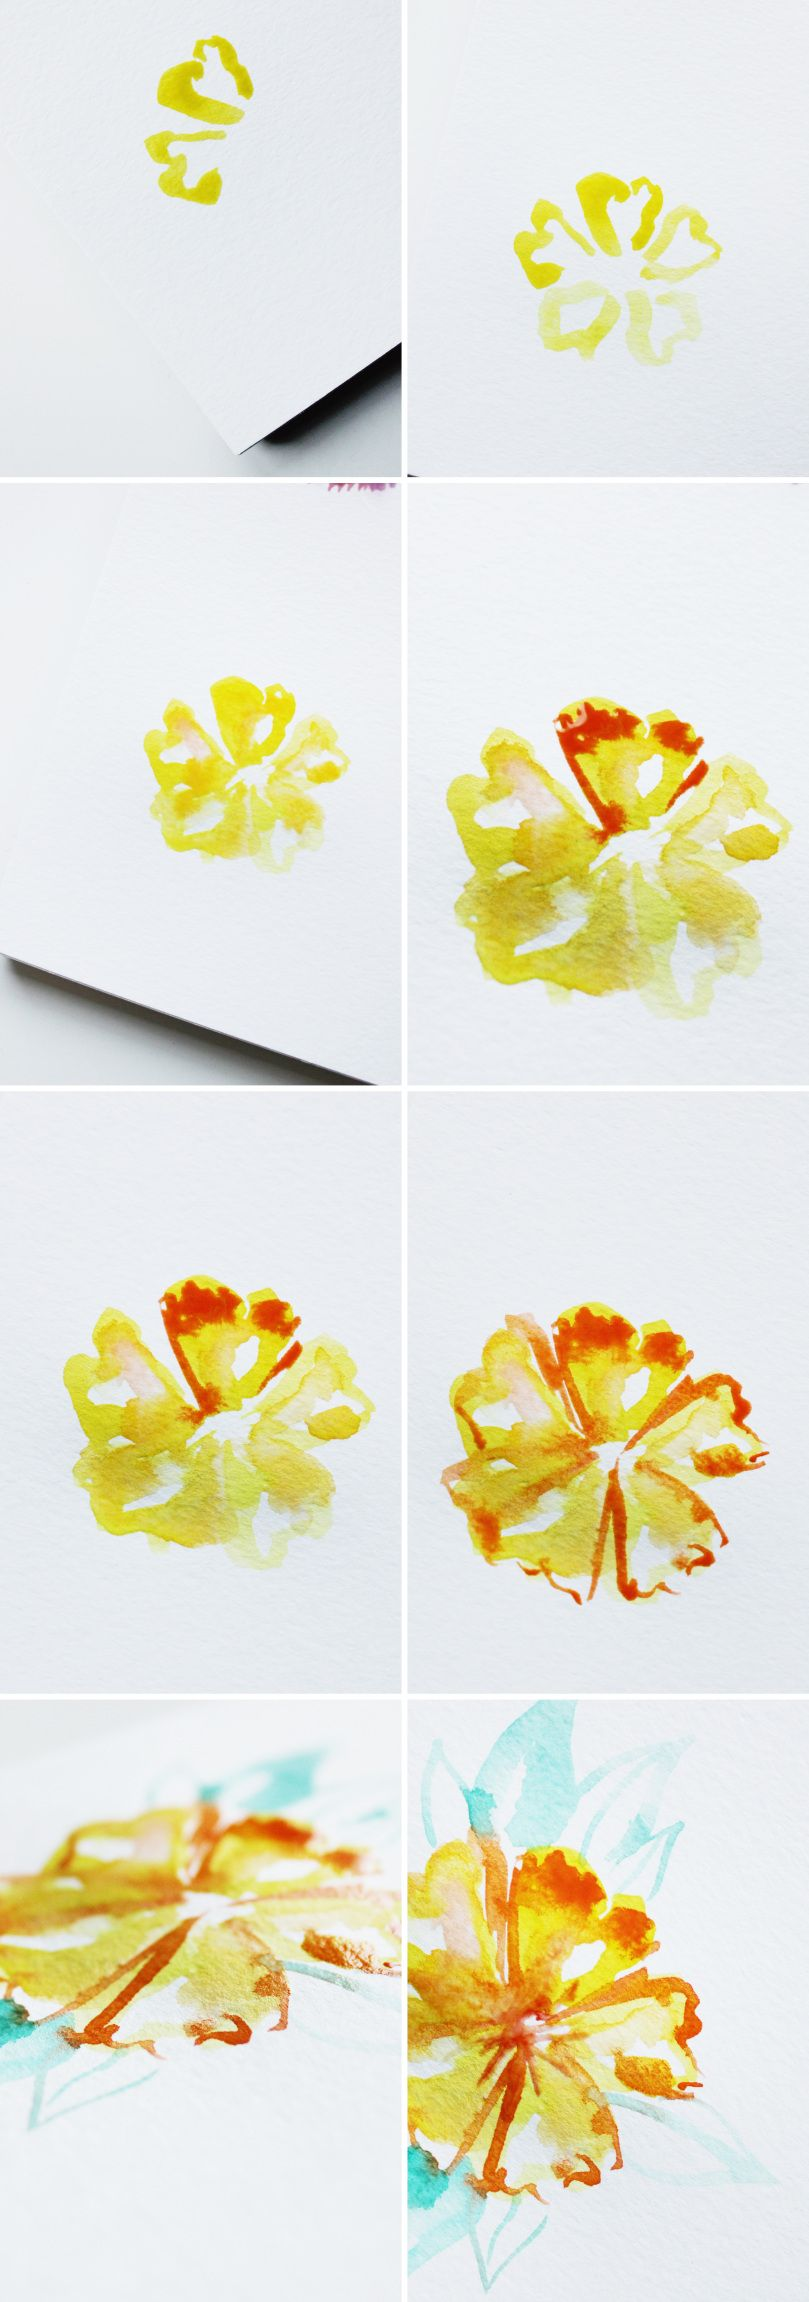 8 Ideas On Drawing Dreamy Flowers With Watercolors Simple